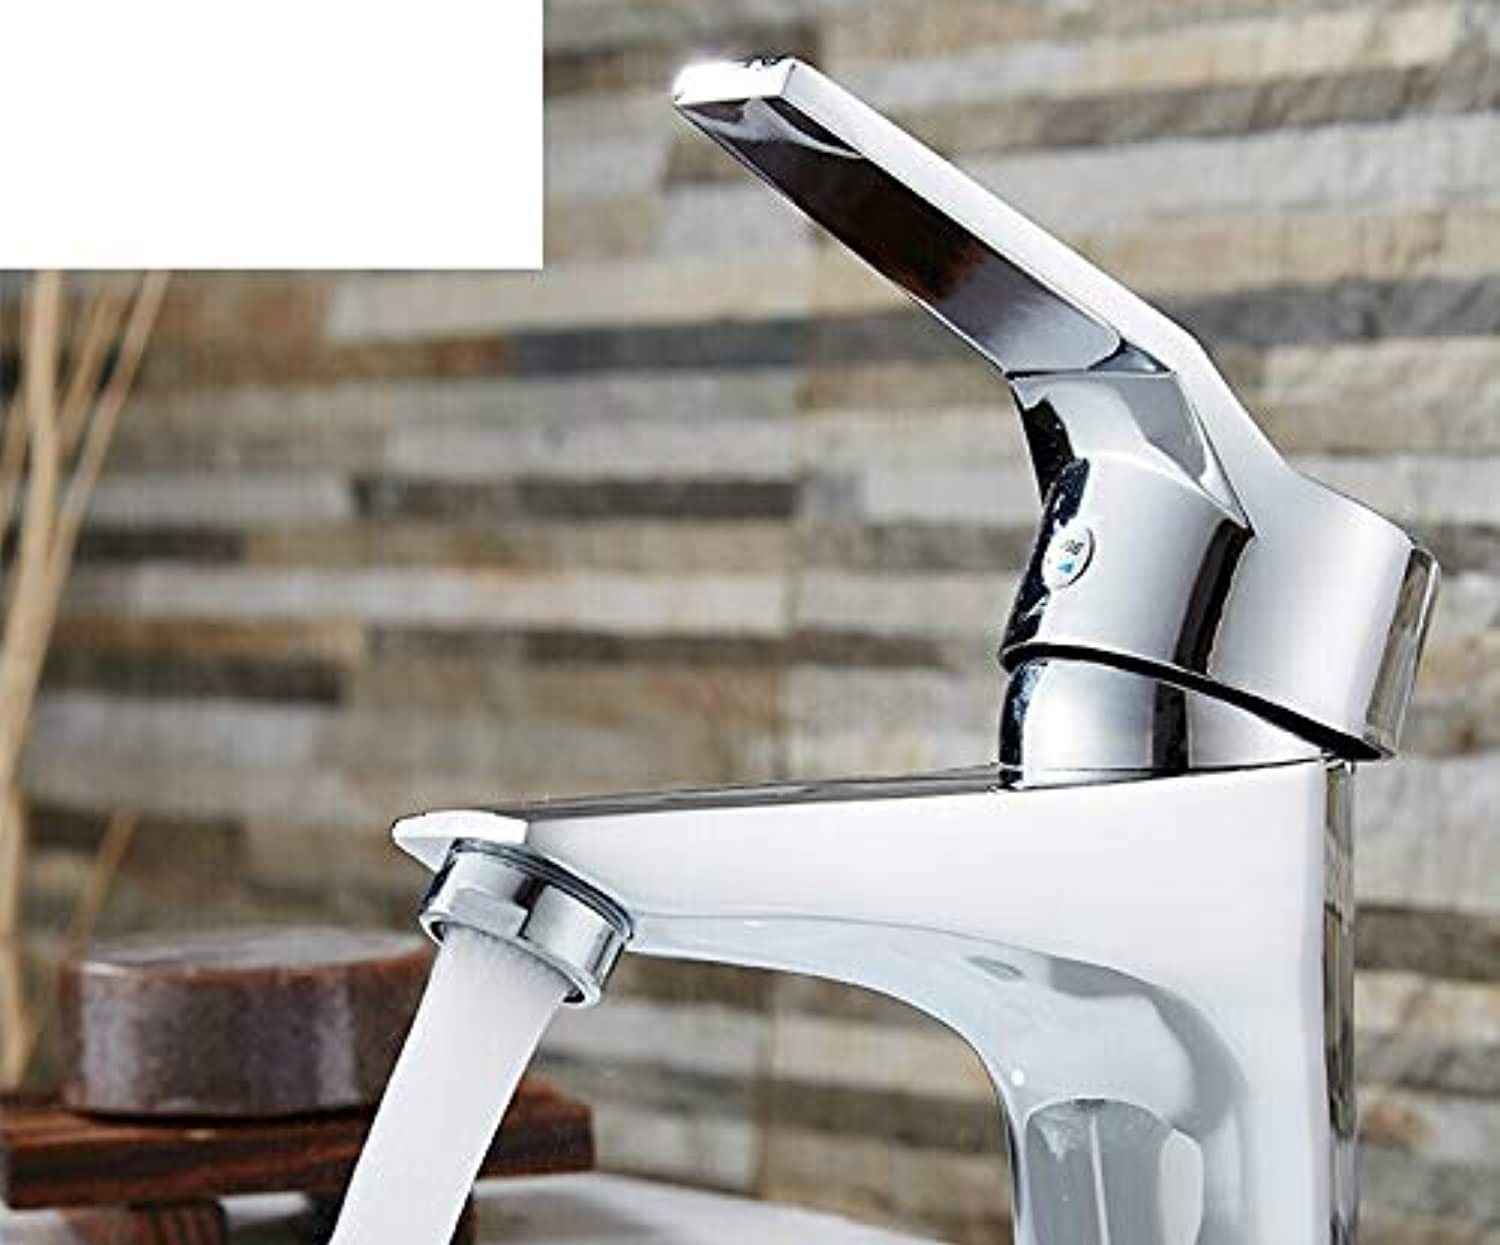 Zhcmy?Faucet Bathroom Cabinet Washbasin Faucet Single Handle Single Hole Hot And Cold Water Faucet Bathroom Counter Basin Faucet???Mixing Valve